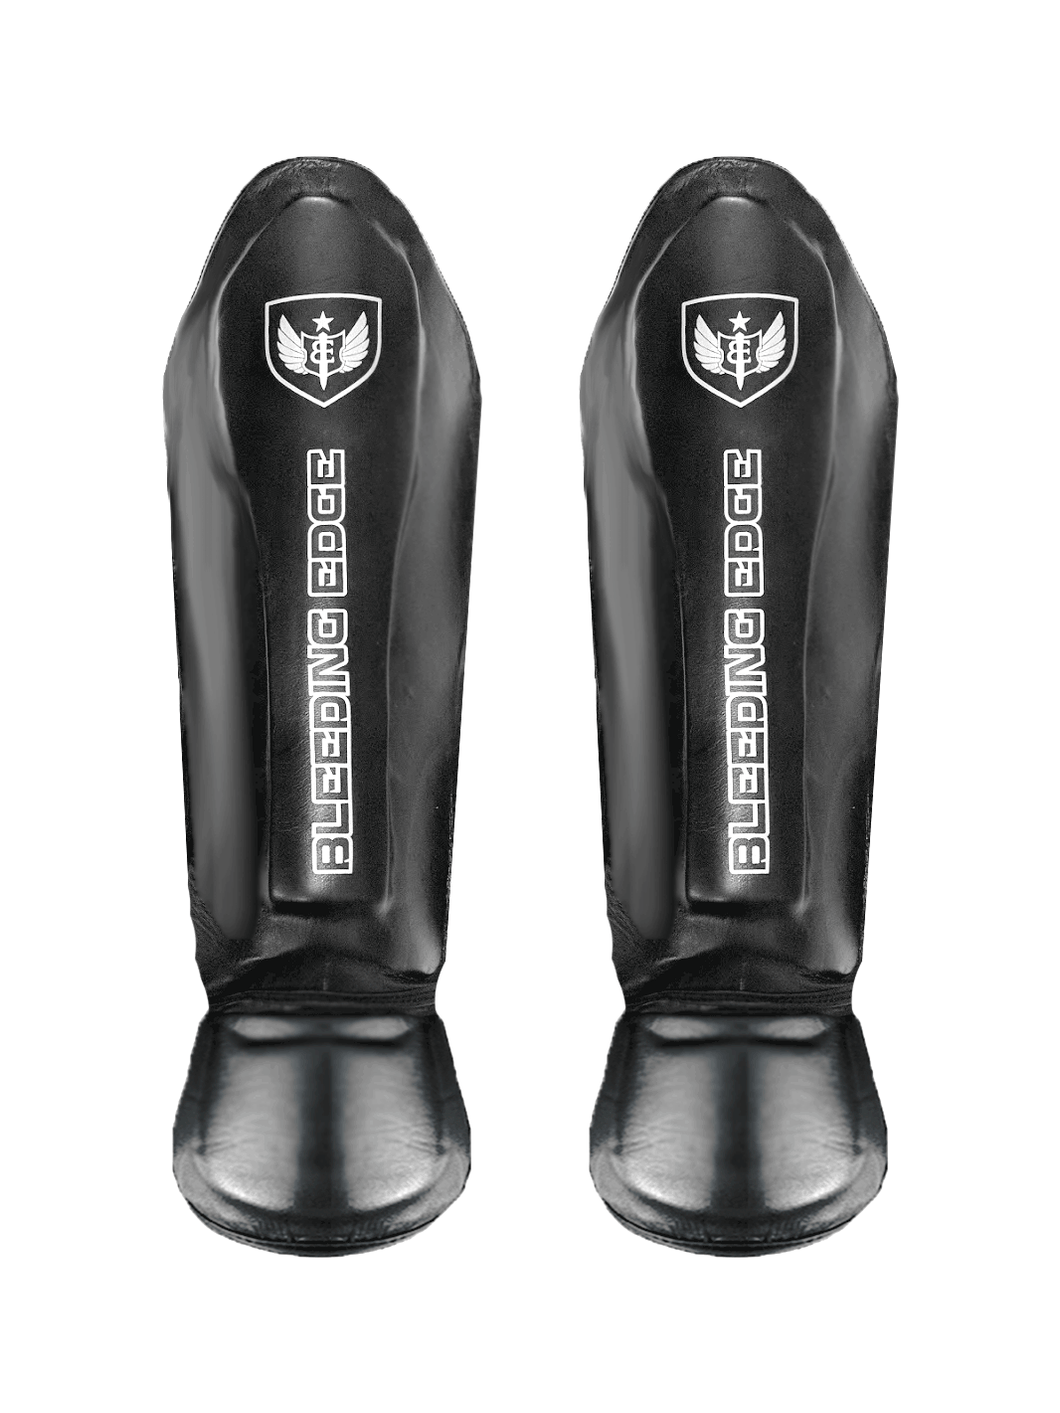 The Dagger - Muay Thai Shin Guards